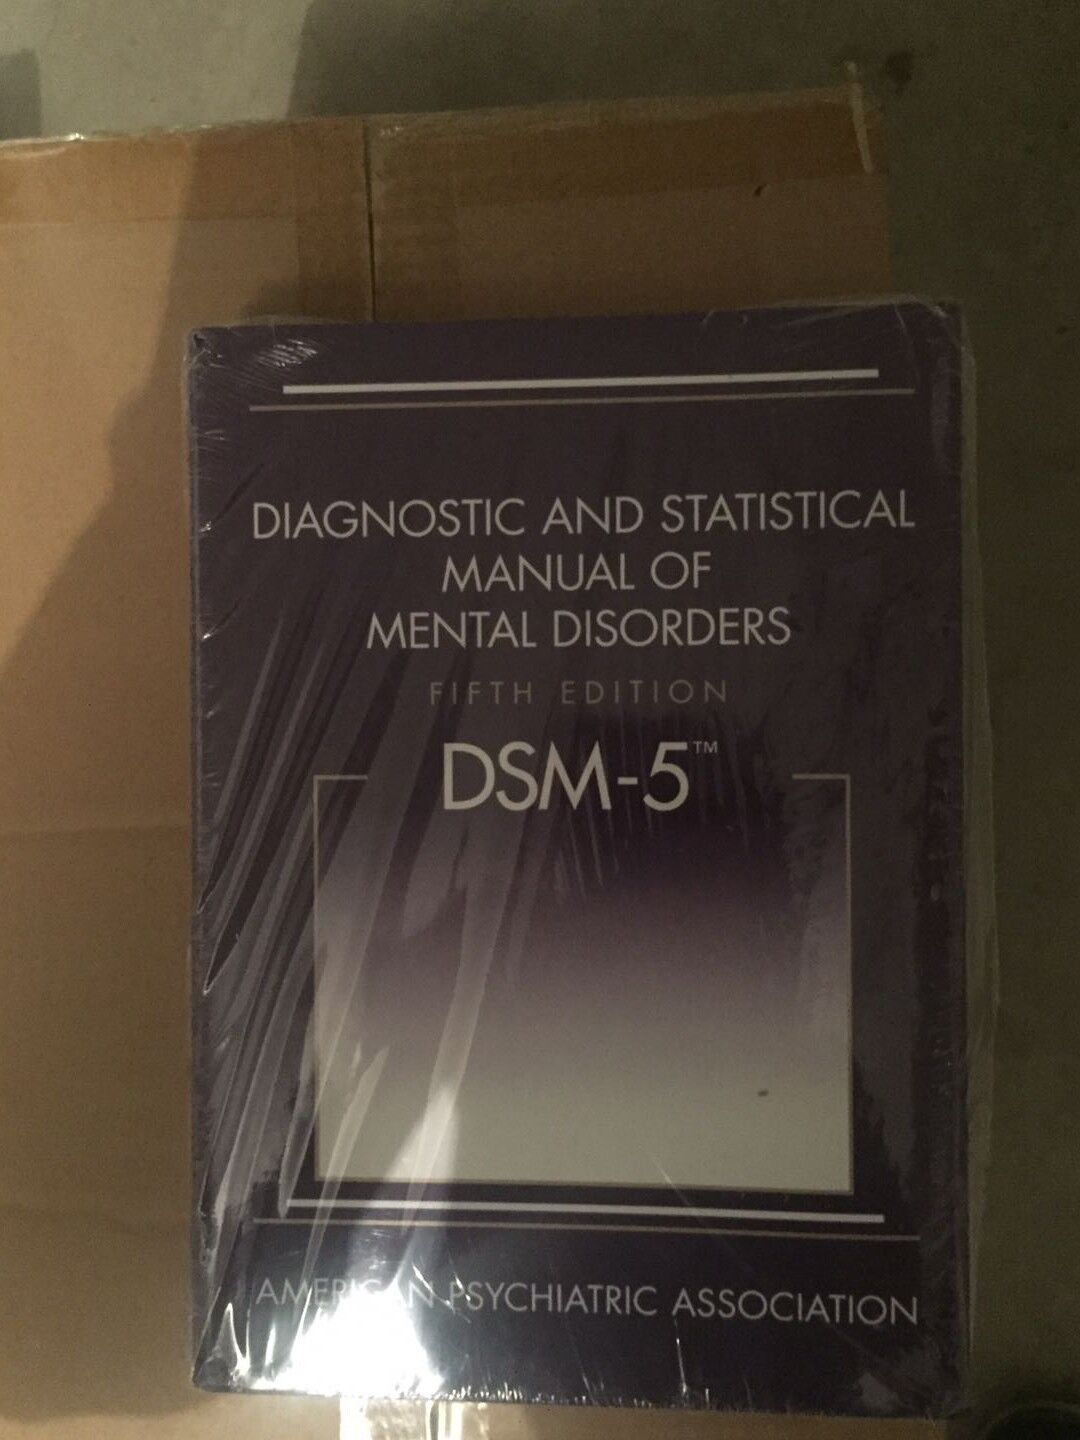 diagnostic statistical manual of mental disorders The diagnostic and statistical manual of mental disorders, fifth edition (dsm-5) is the 2013 update to the diagnostic and statistical manual of mental disorders, the taxonomic and diagnostic tool published by the american psychiatric association (apa.